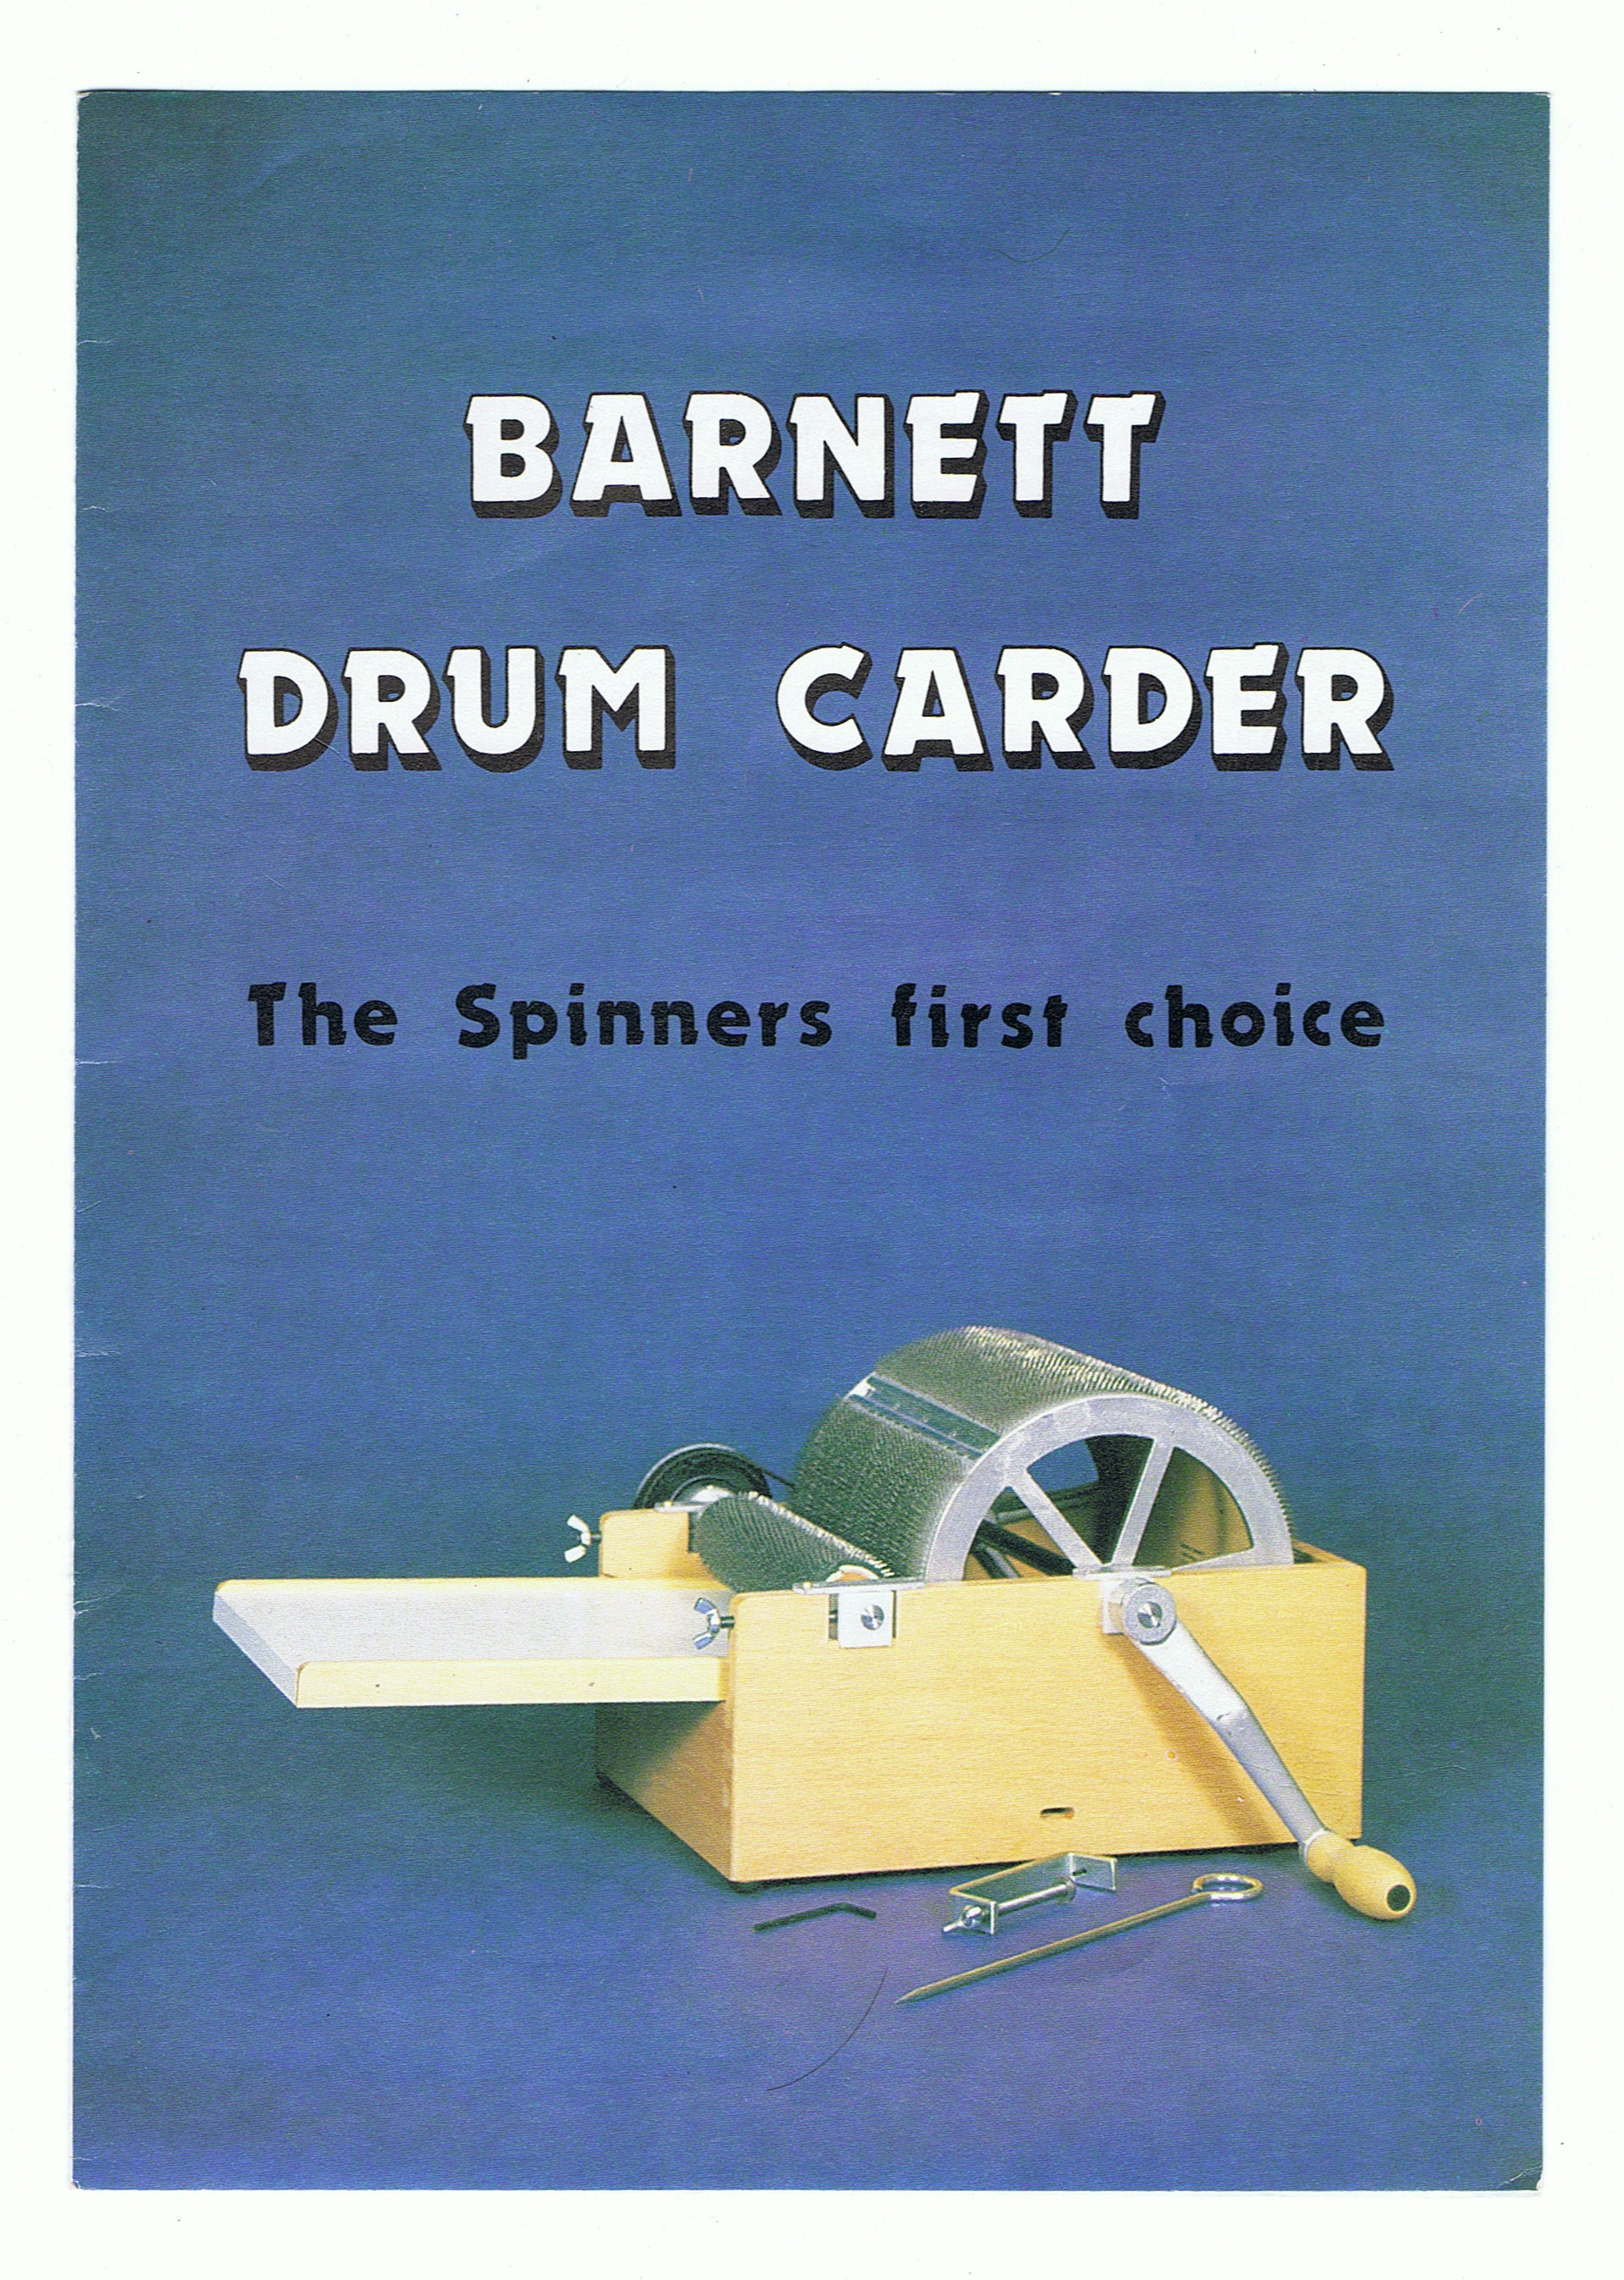 Drum carder front page